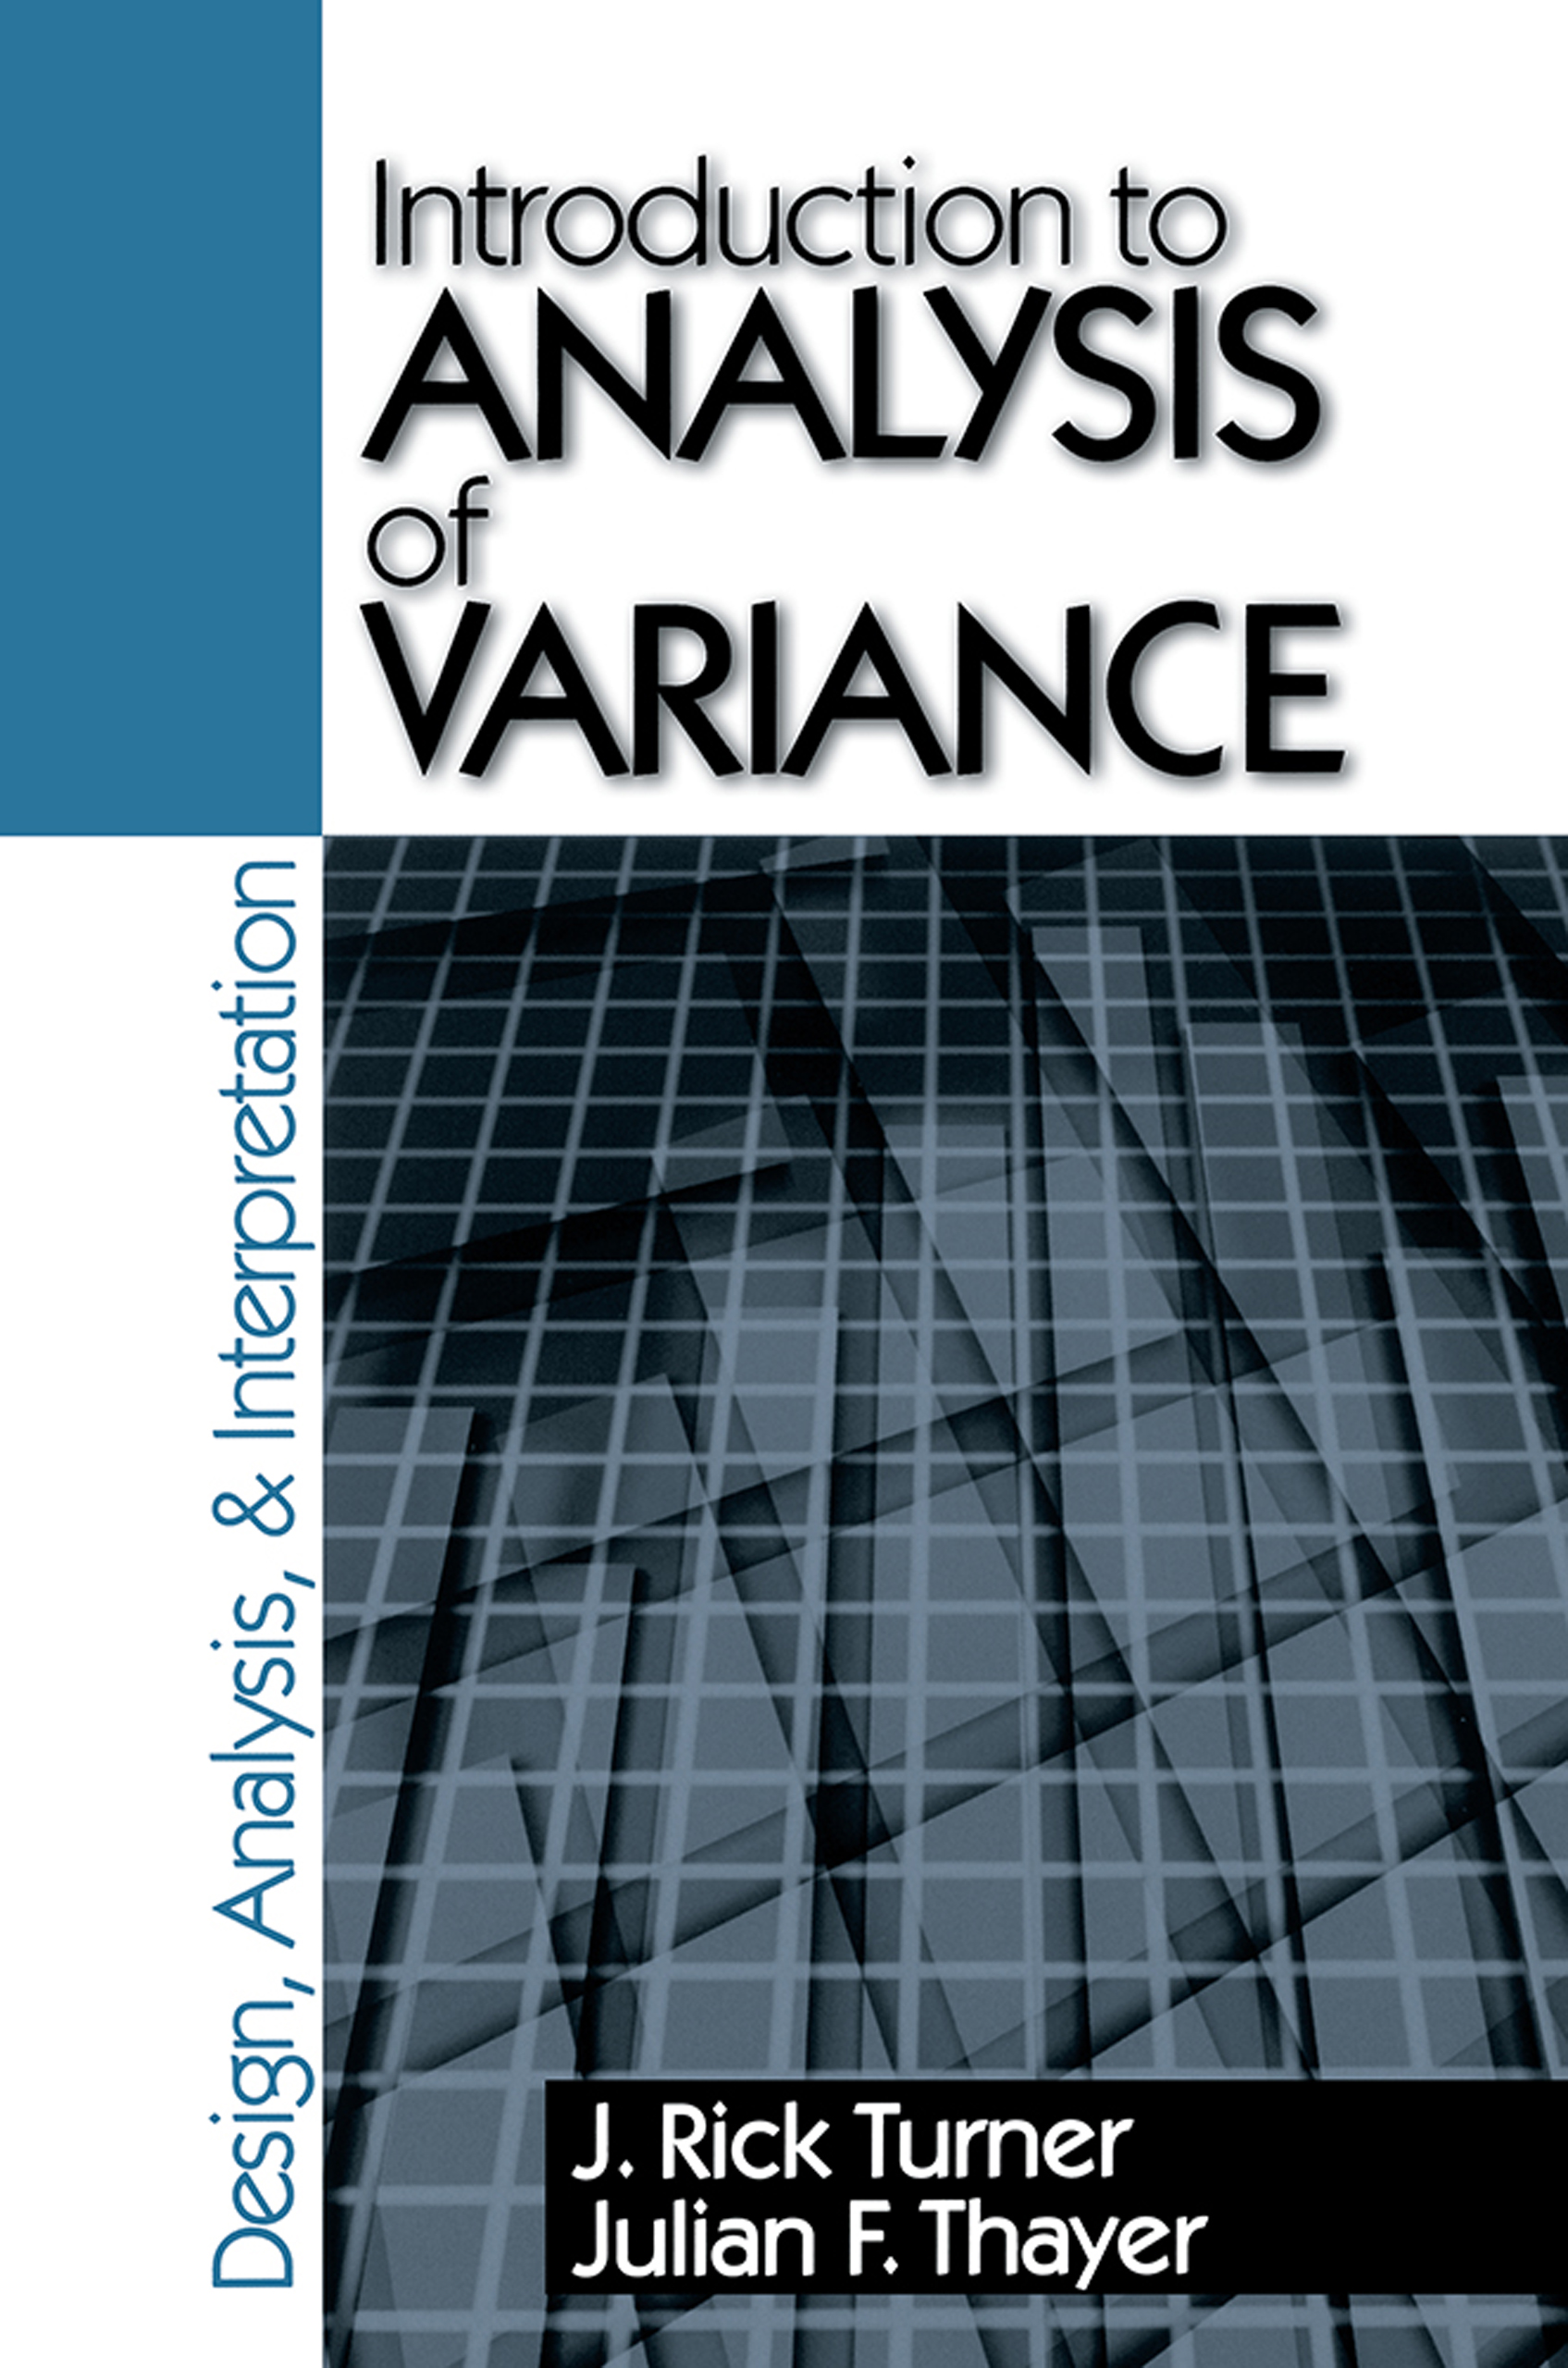 an introduction to the issue of the variance in personalities Socialization as a concept originated concurrently with sociology, as sociology was defined as the treatment of the specifically social, the process and forms of socialization, as such, in contrast to the interests and contents which find expression in socialization.